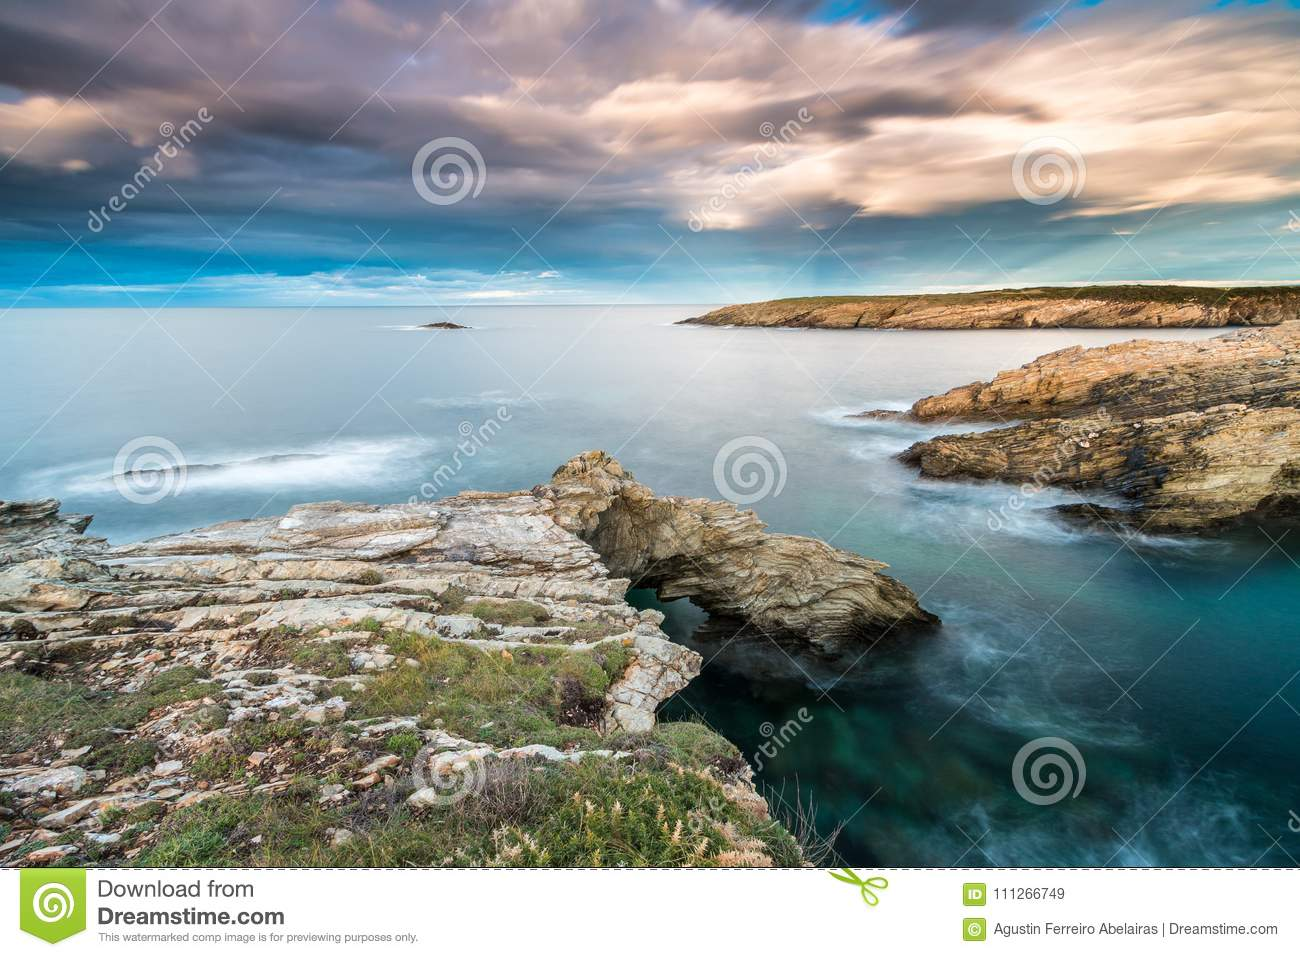 The sunsets in the sea of the coasts and beaches of Galicia and Asturias